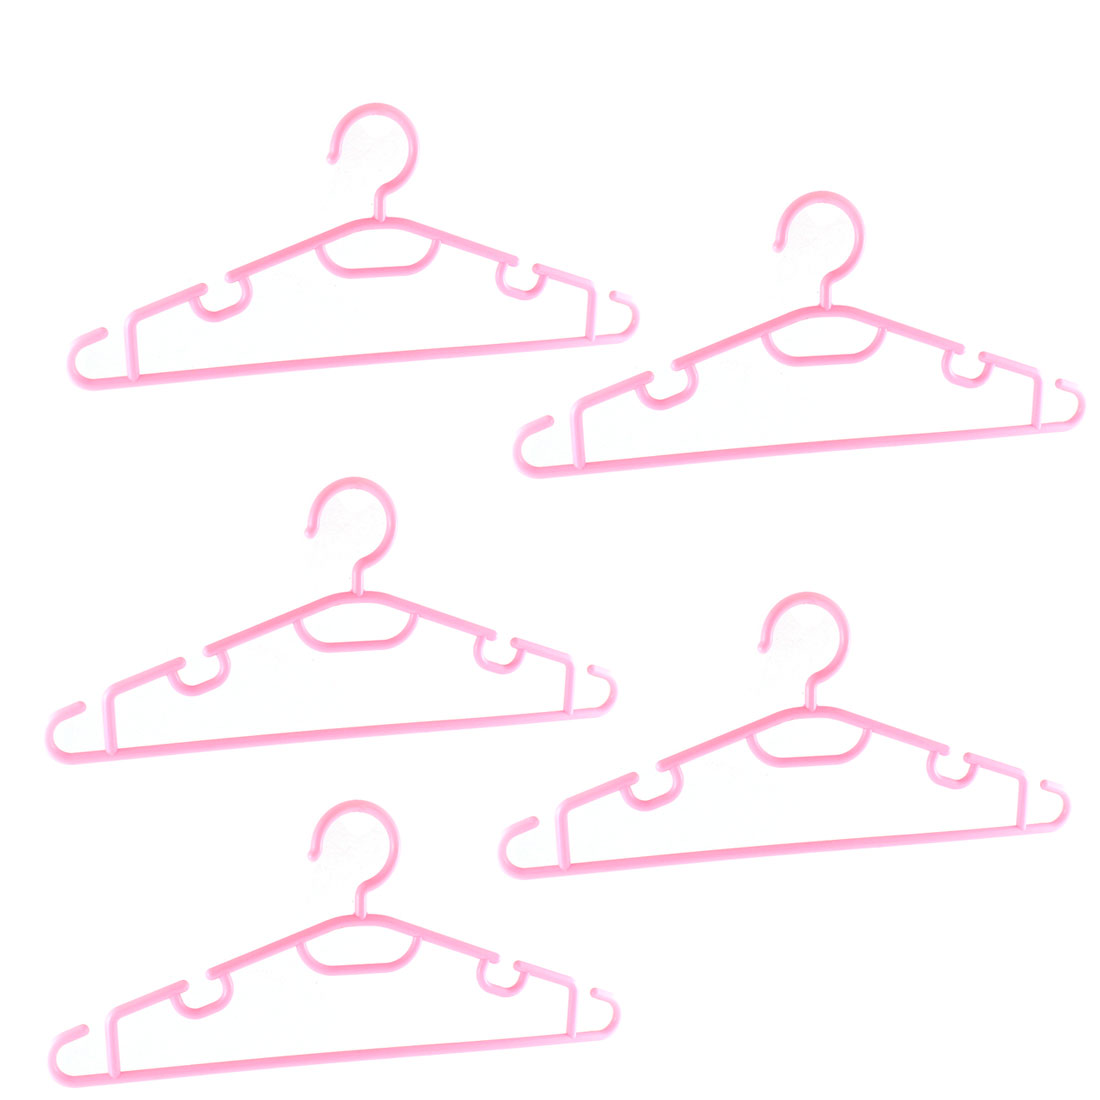 Household Clothes Garment Coat Plastic Hangers Pink 5PCS